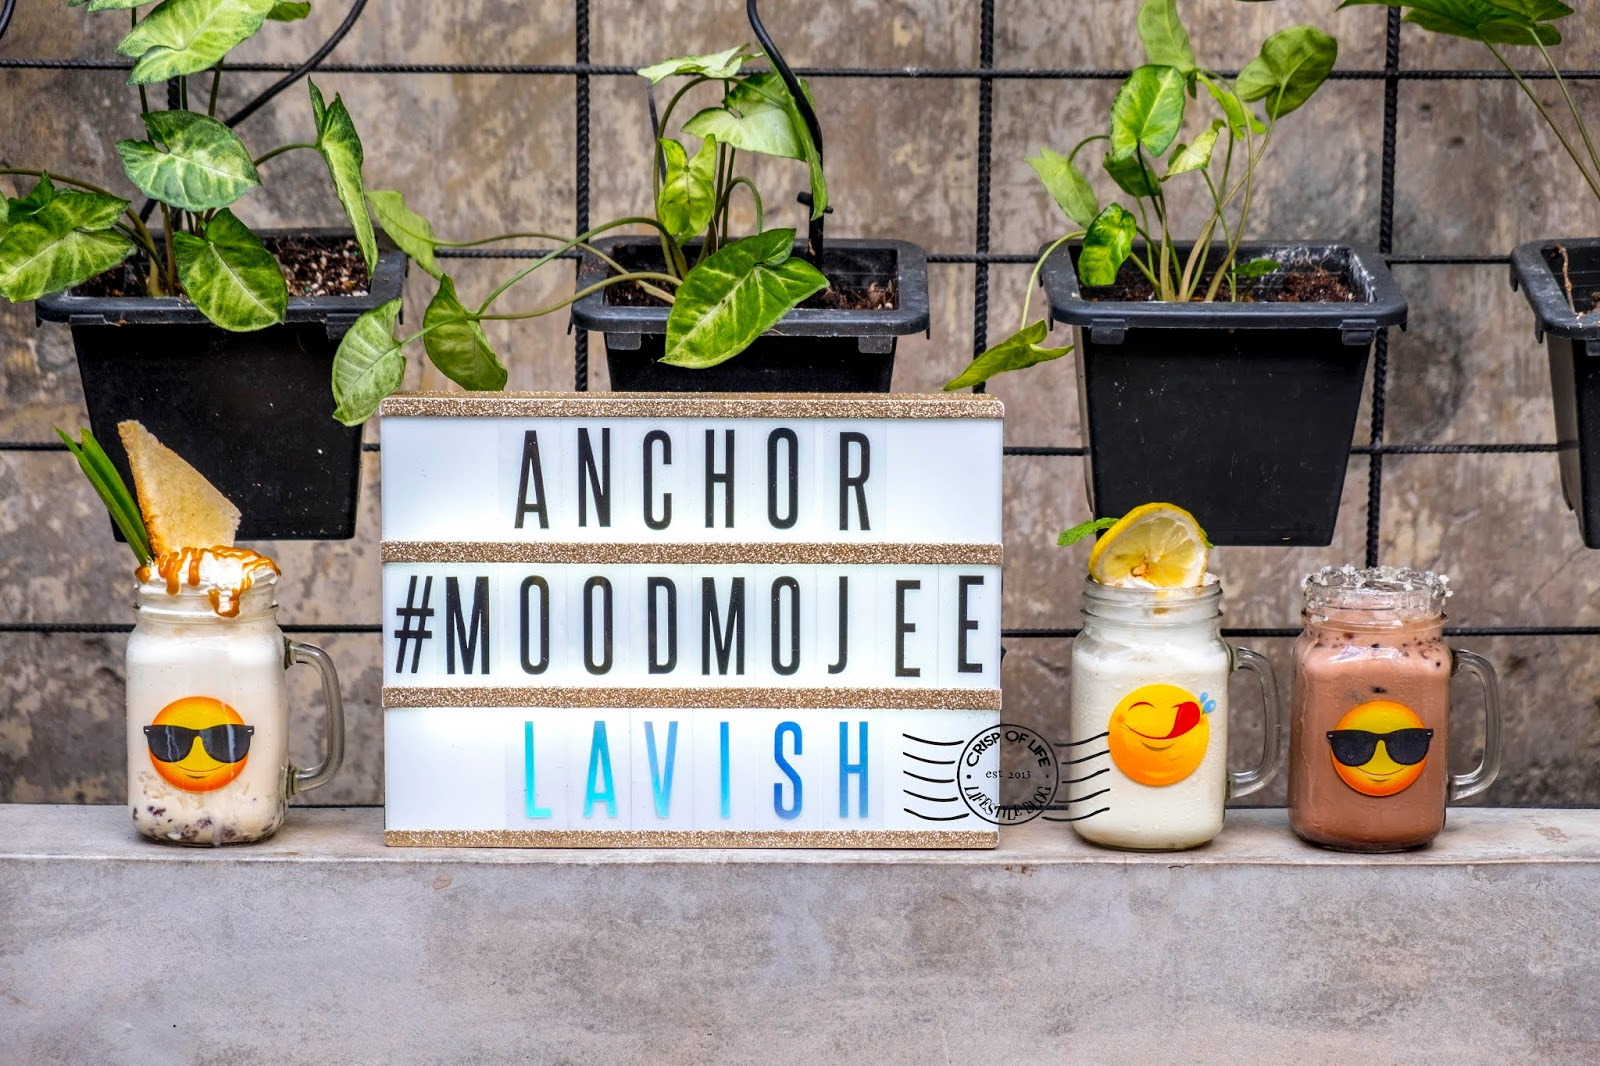 Moodmojee drinks by Anchor Food Professionals